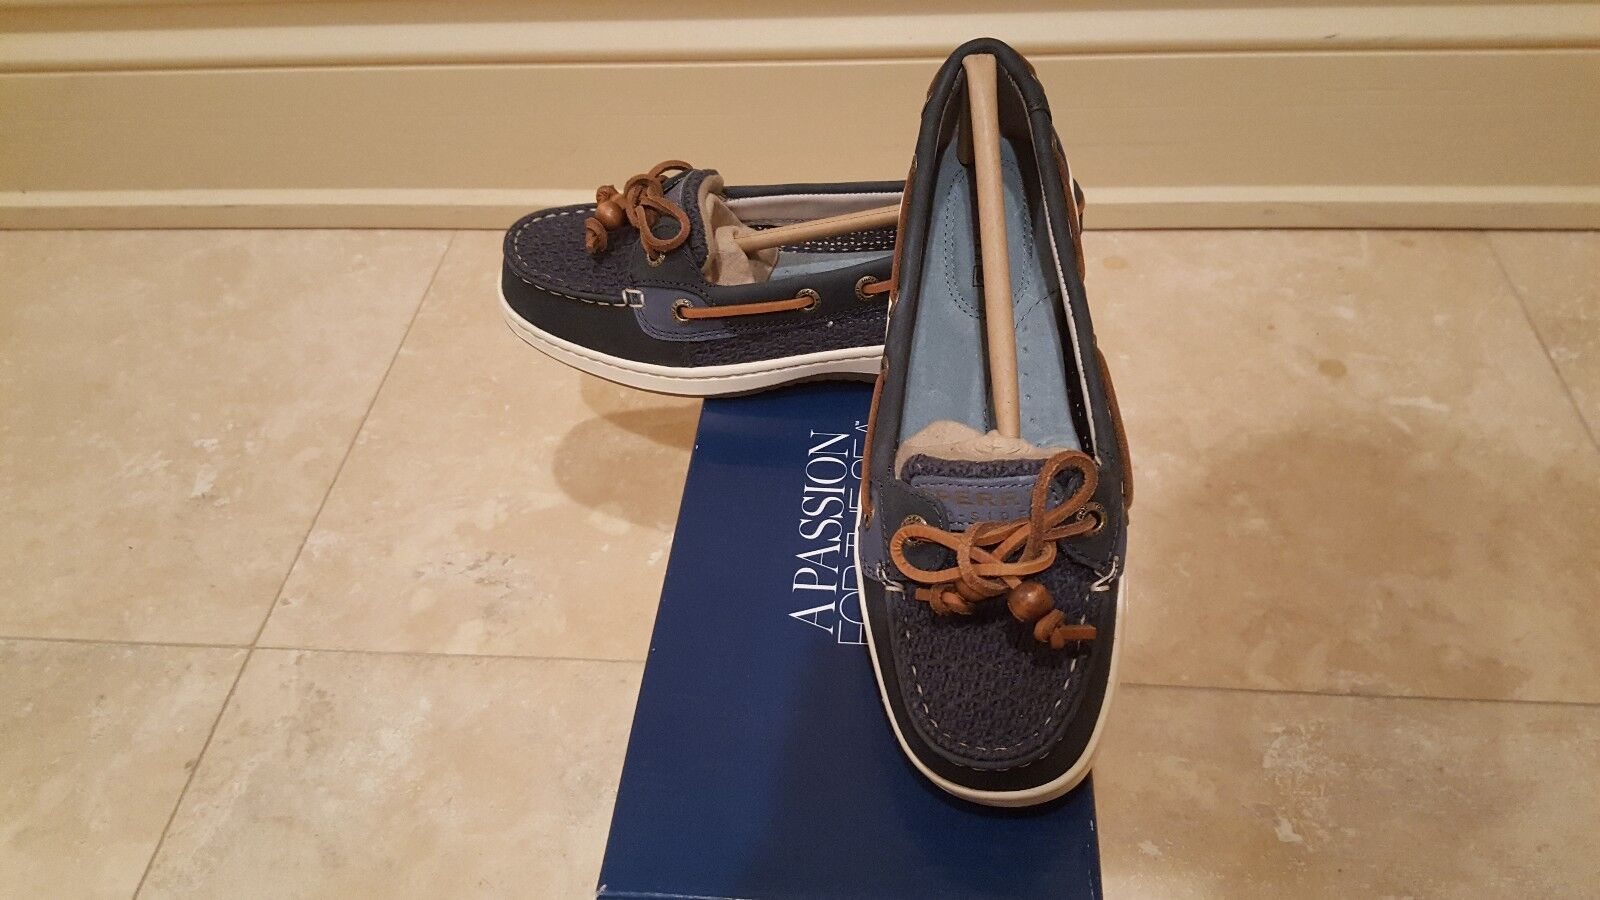 NWB Sperry Top-Sider Women's Angelfish Cotton Mesh Navy Boat Shoe 5M